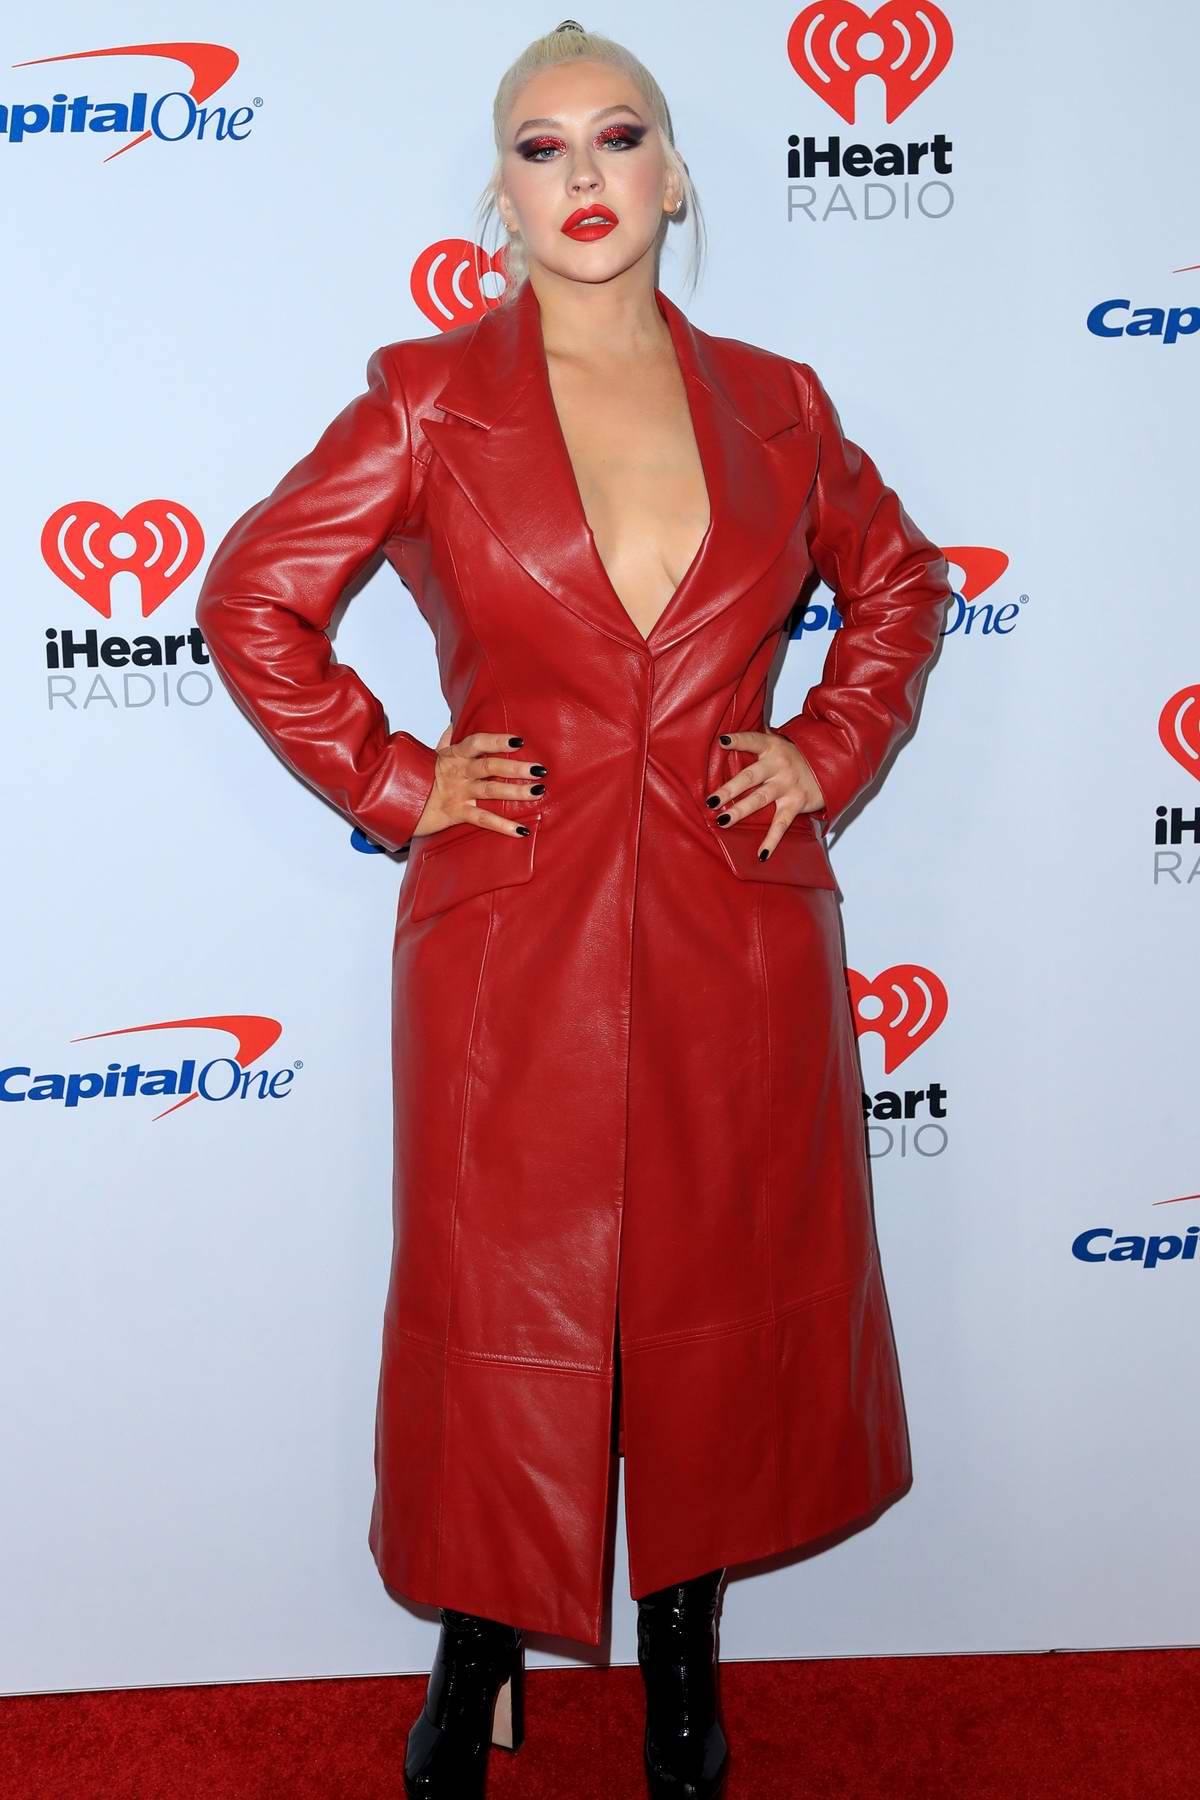 Christina Aguilera attends the 2019 iHeartradio Music Festival at T-Mobile Arena in Las Vegas, Nevada